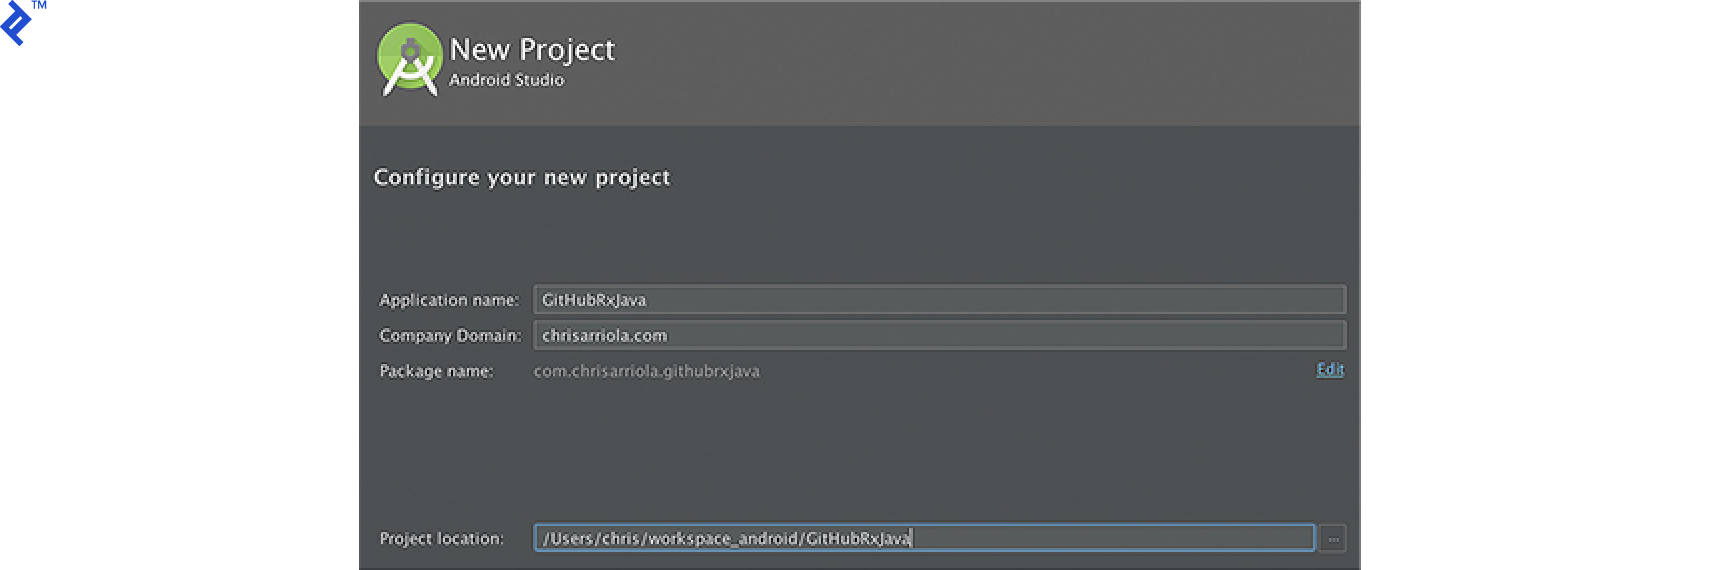 Screen shot: Create a new Android project